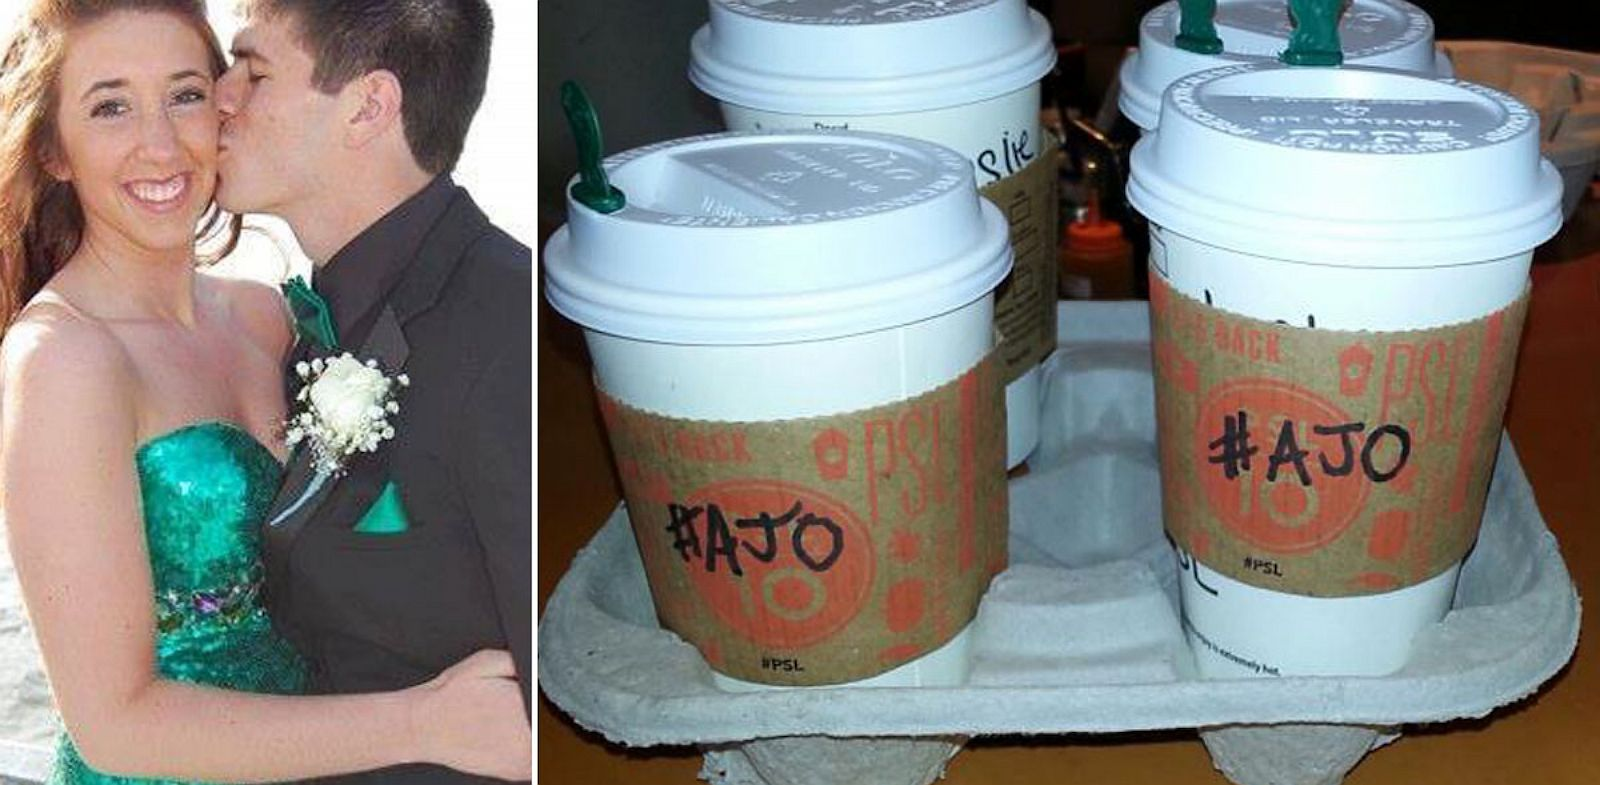 PHOTO: After the death of Alyssa ONeill (pictured at left), her familys pumpkin spice latte act of kindness, at right, has gone viral and spread all over the world.